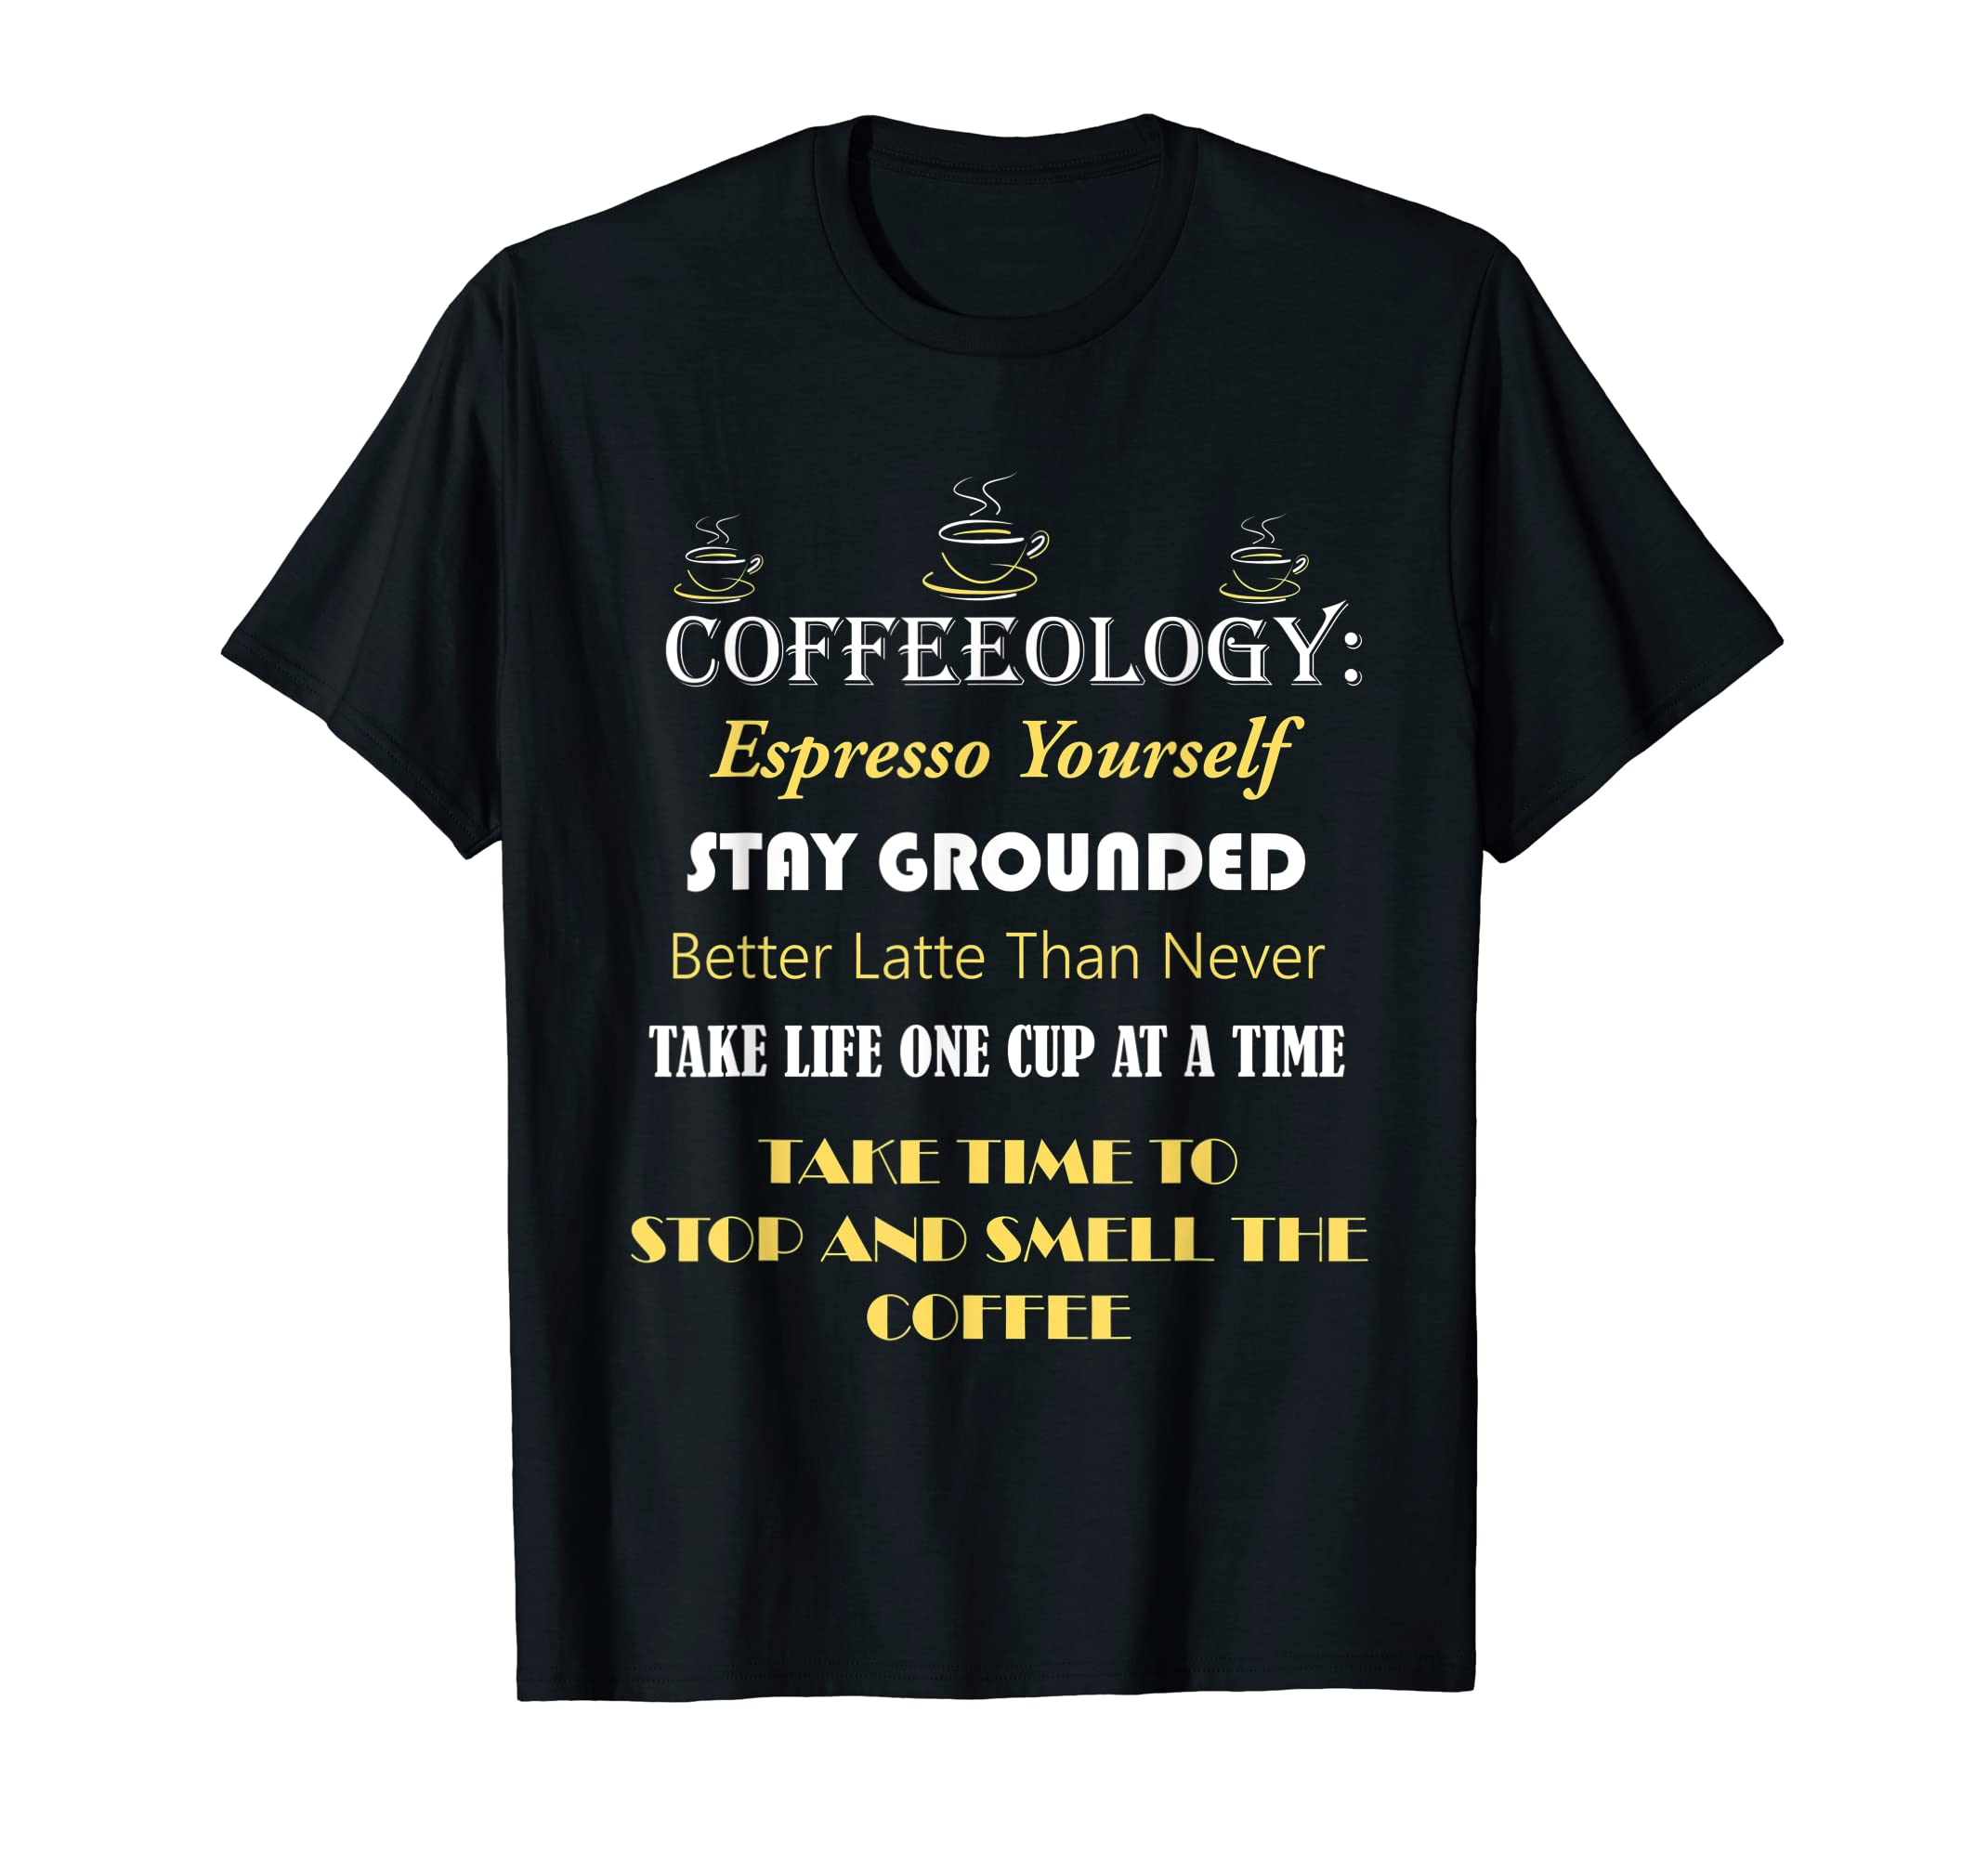 5453086e Amazon.com: Coffeeology Funny Coffee Quotes T-shirt: Clothing